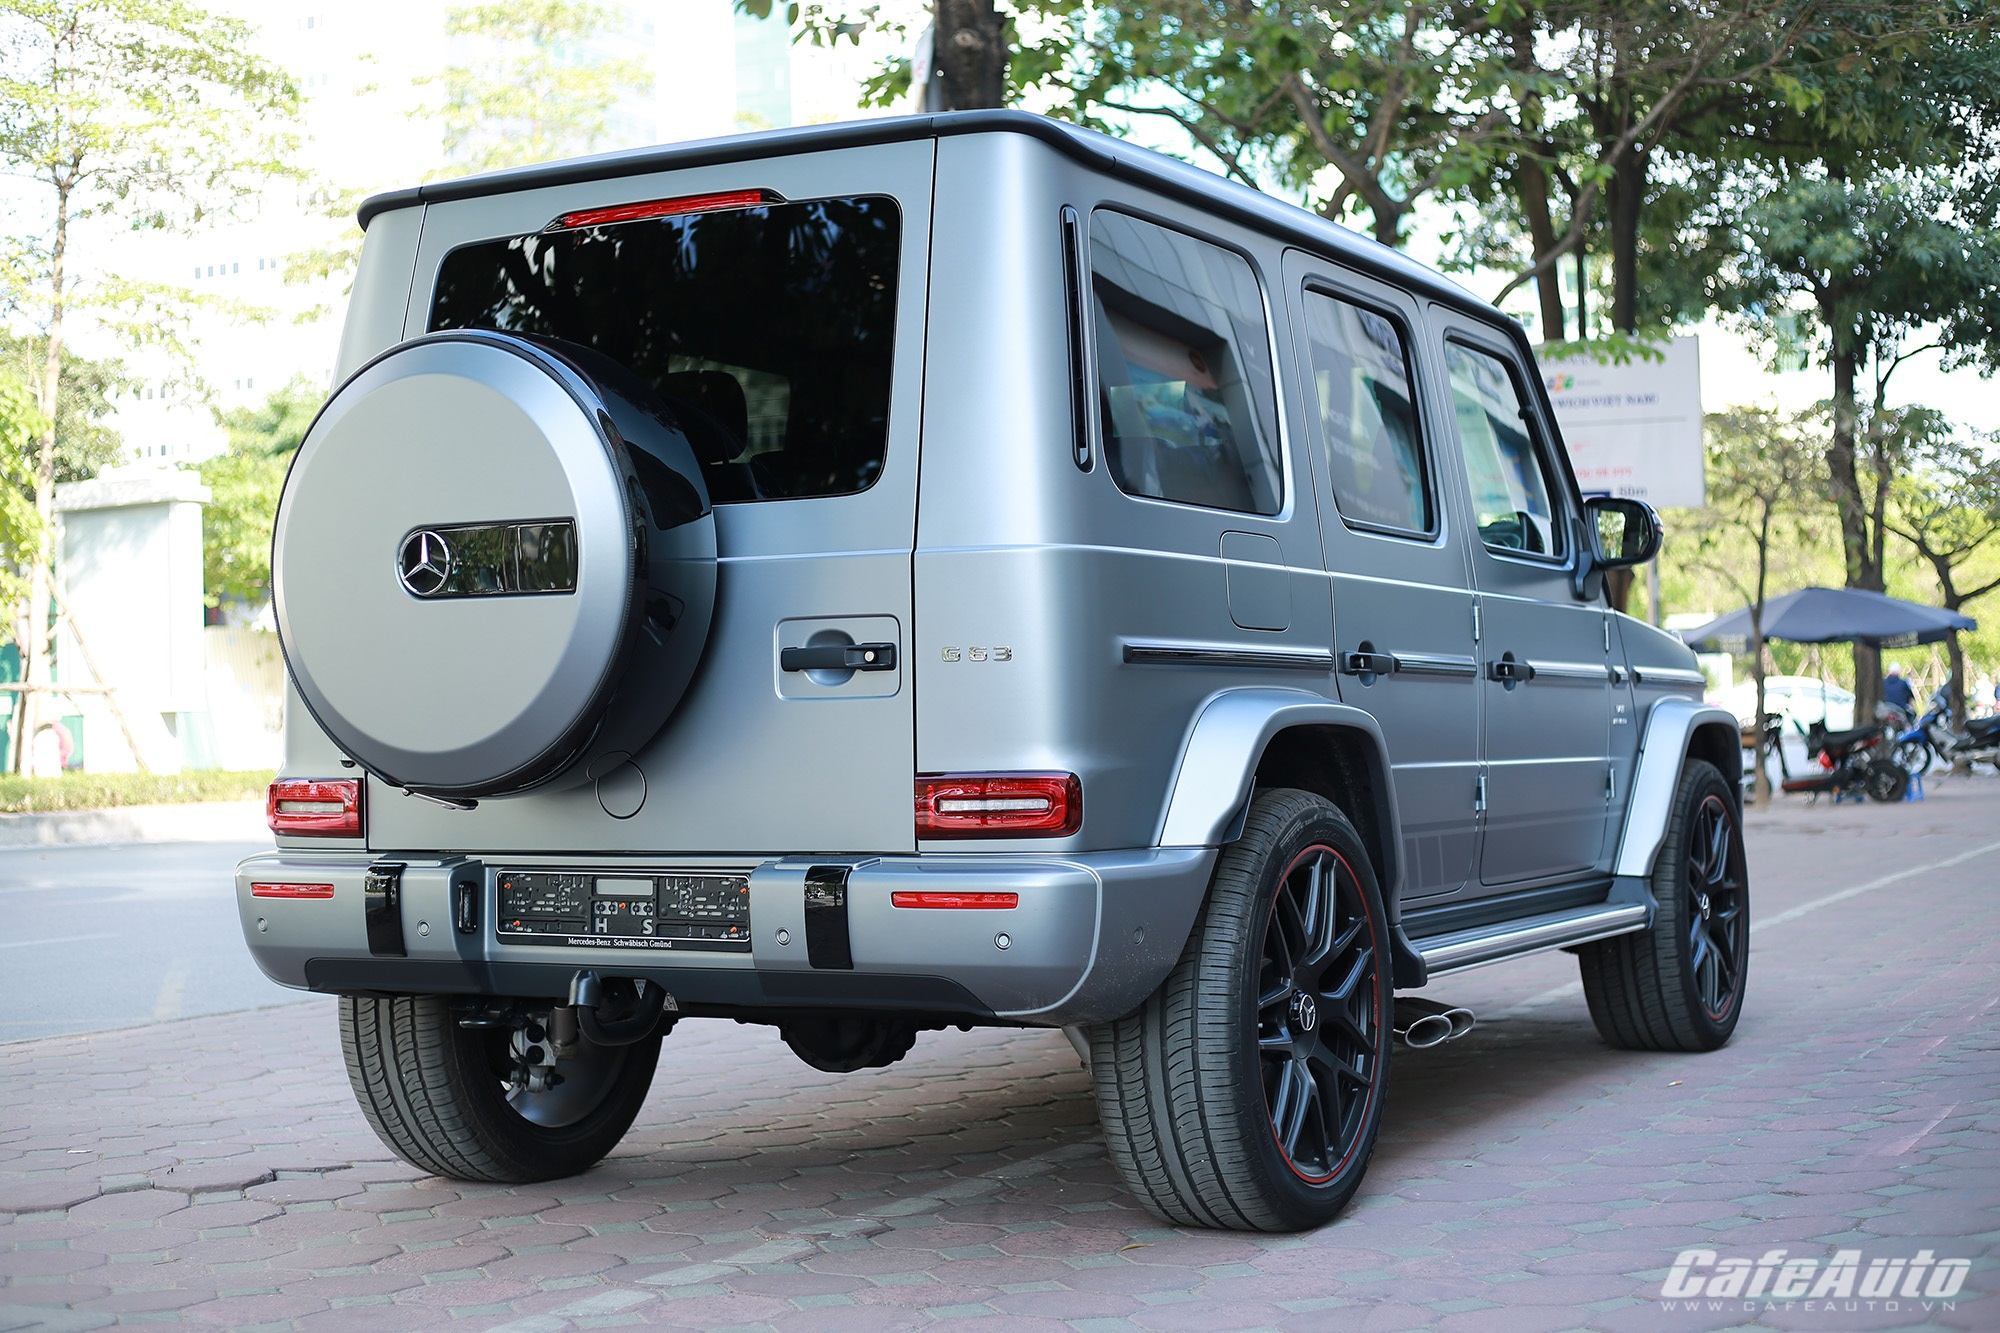 G63edition1-cafeautovn-8